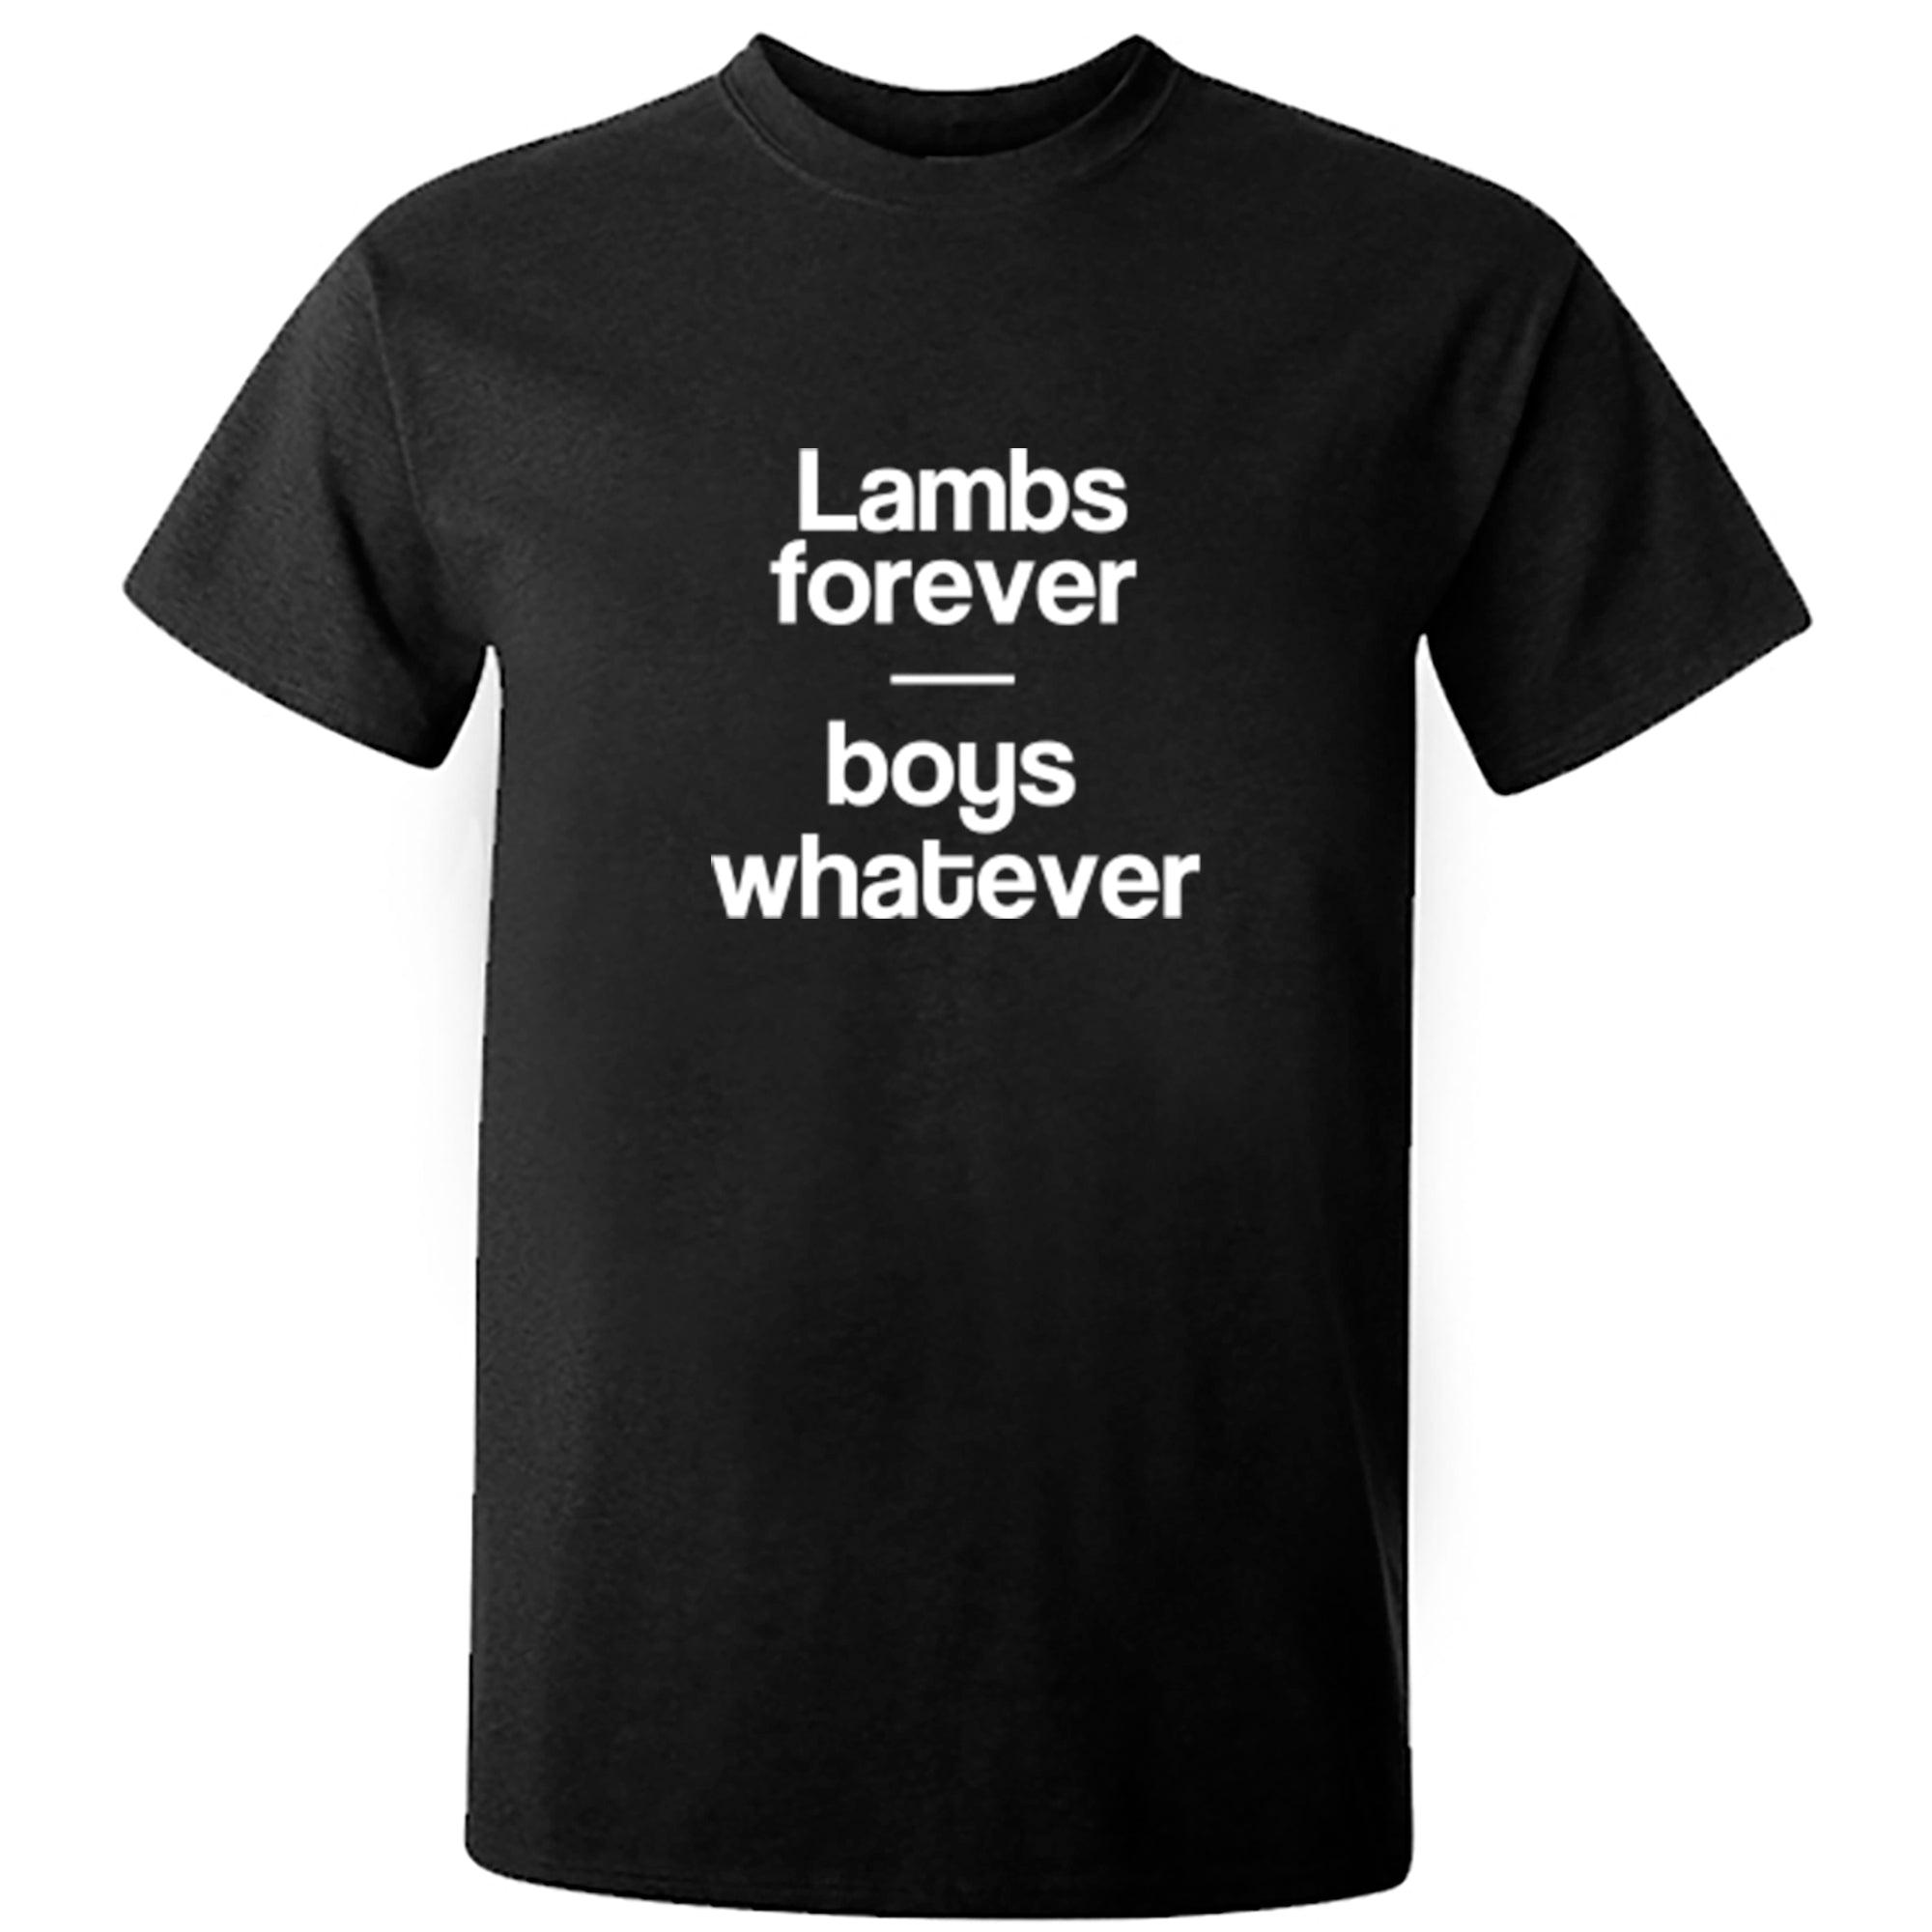 Lambs Forever Boys Whatever Print Unisex Fit T-Shirt S0760